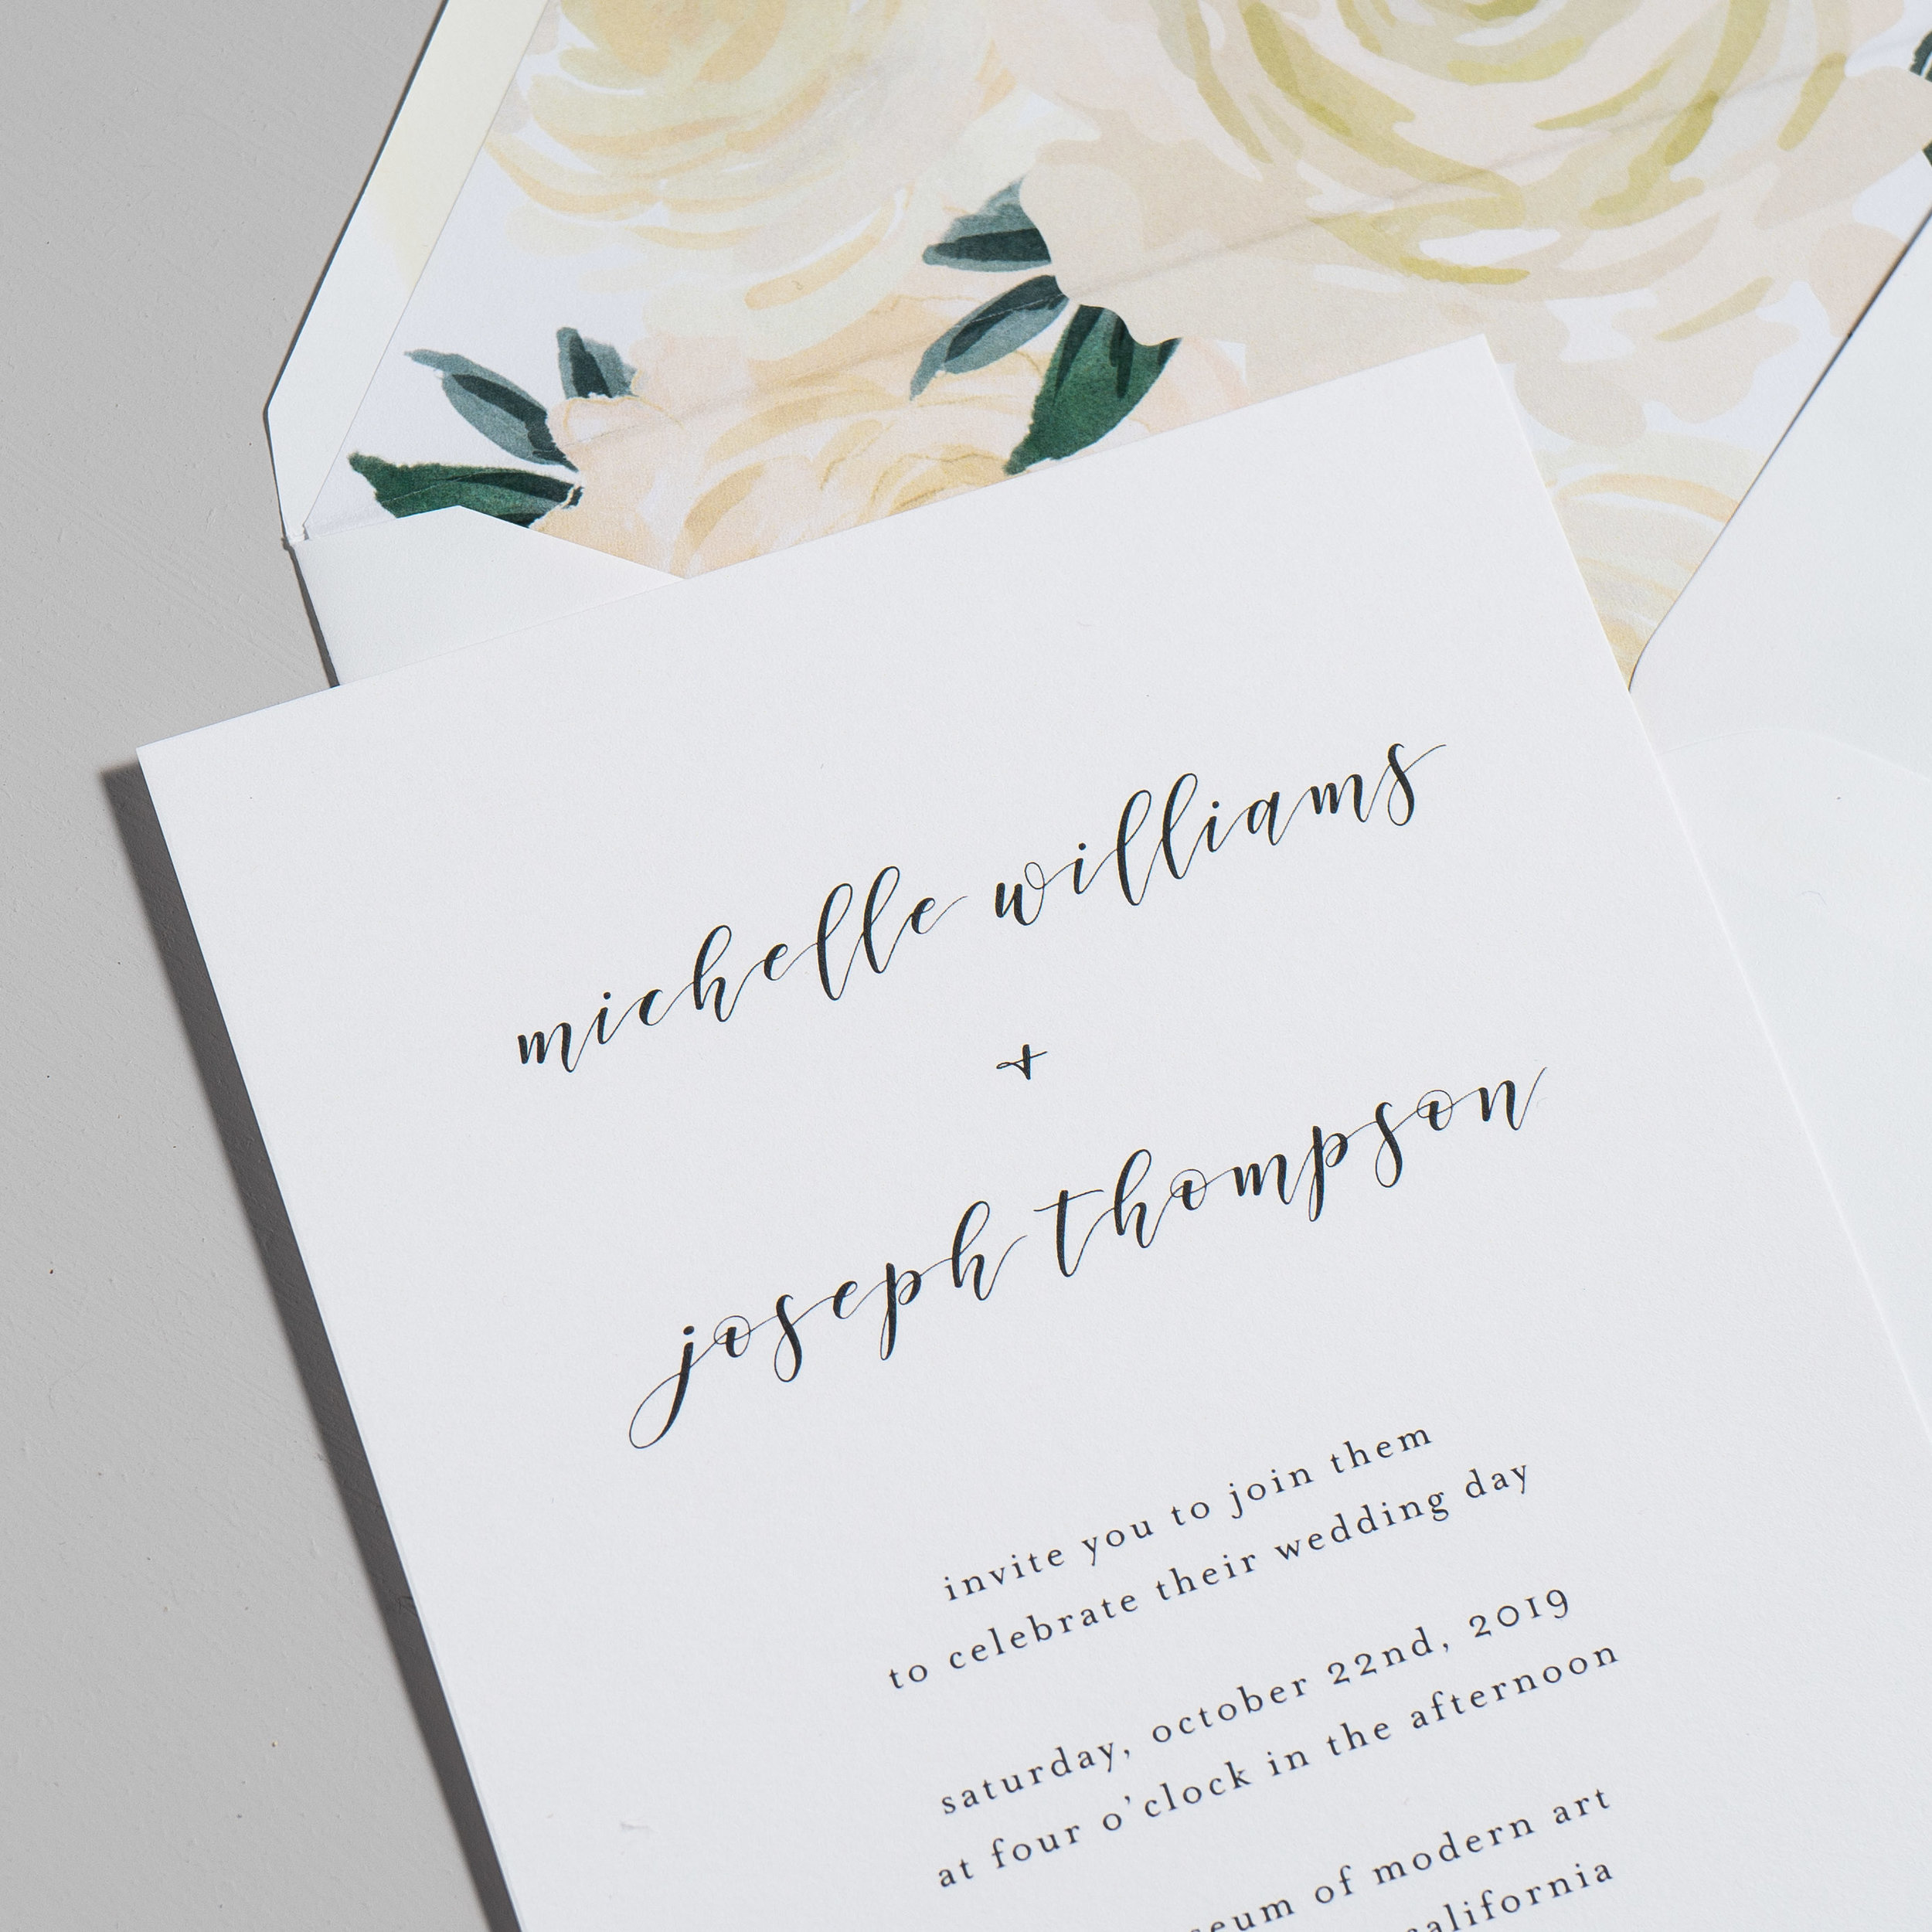 Minimalist Floral Wedding Invitations by Just Jurf-8a.jpg